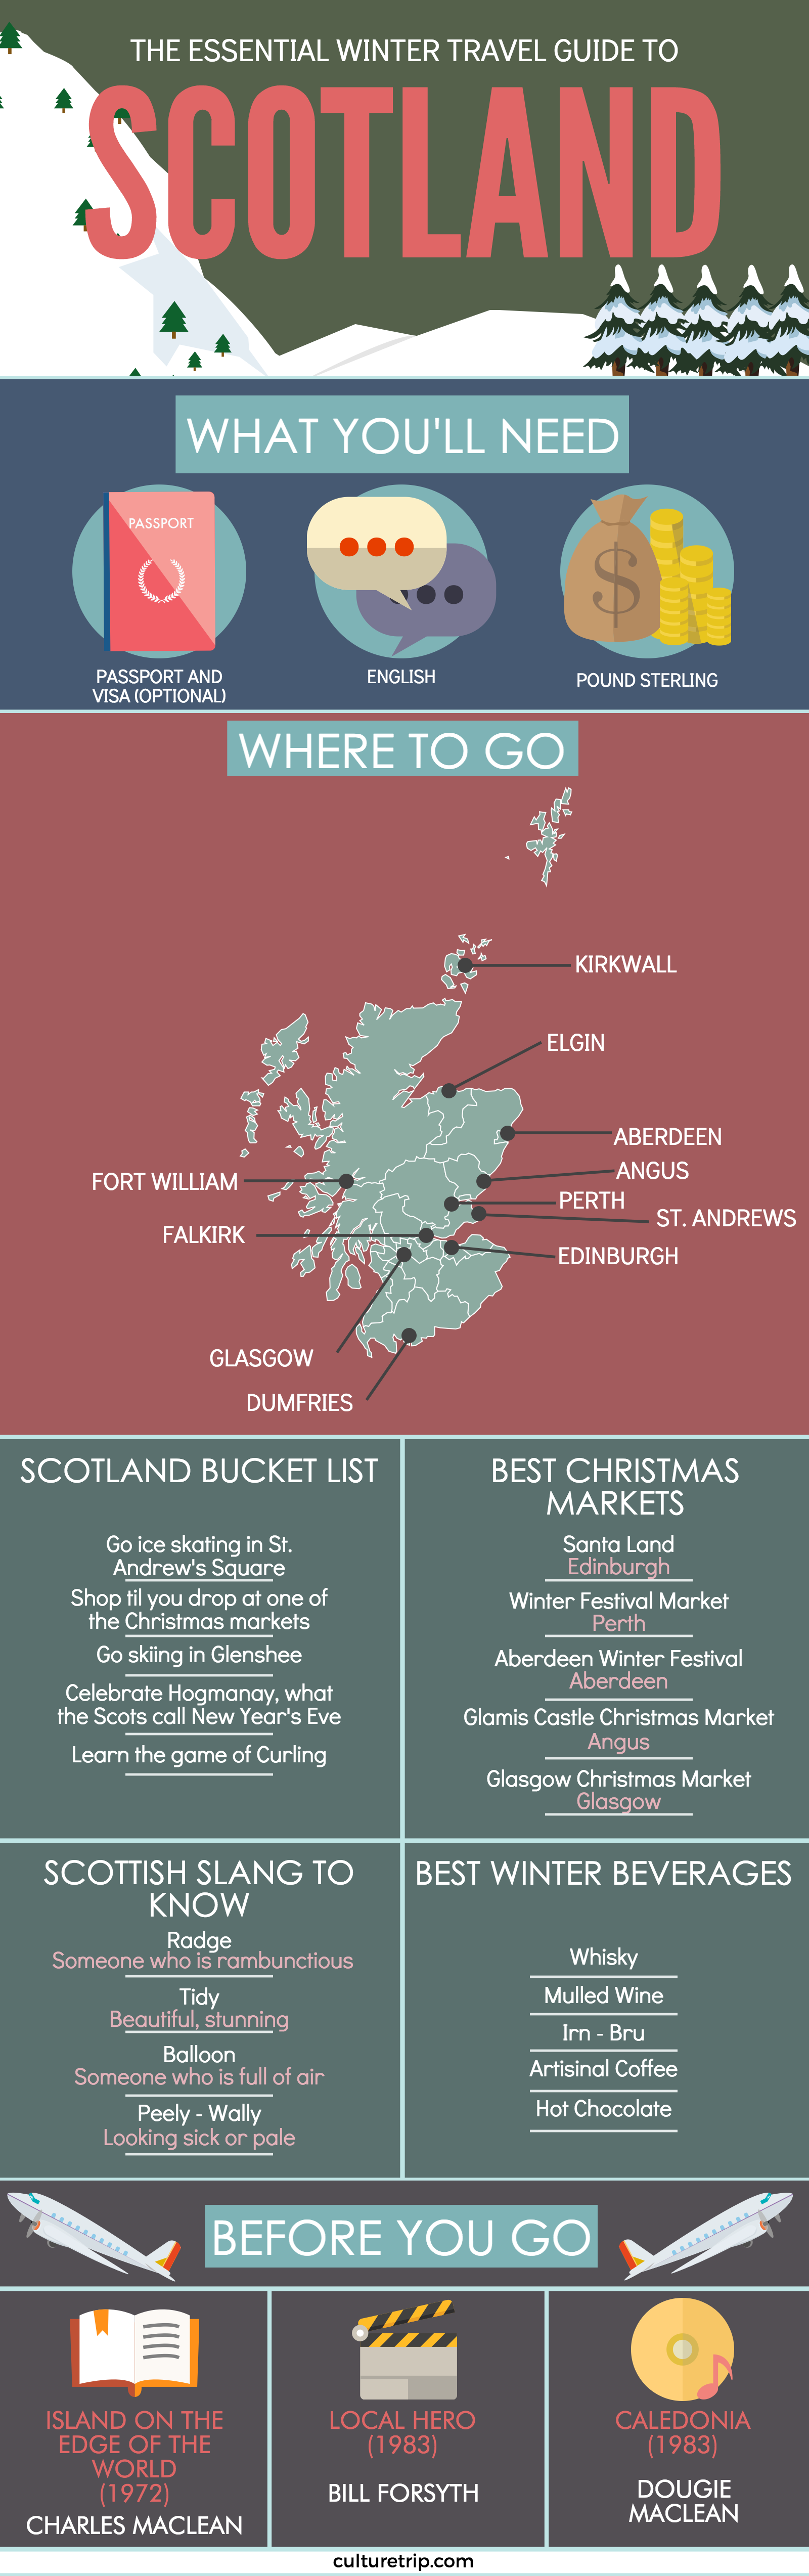 The scotland winter travel guide infographic for Travel guide to scotland